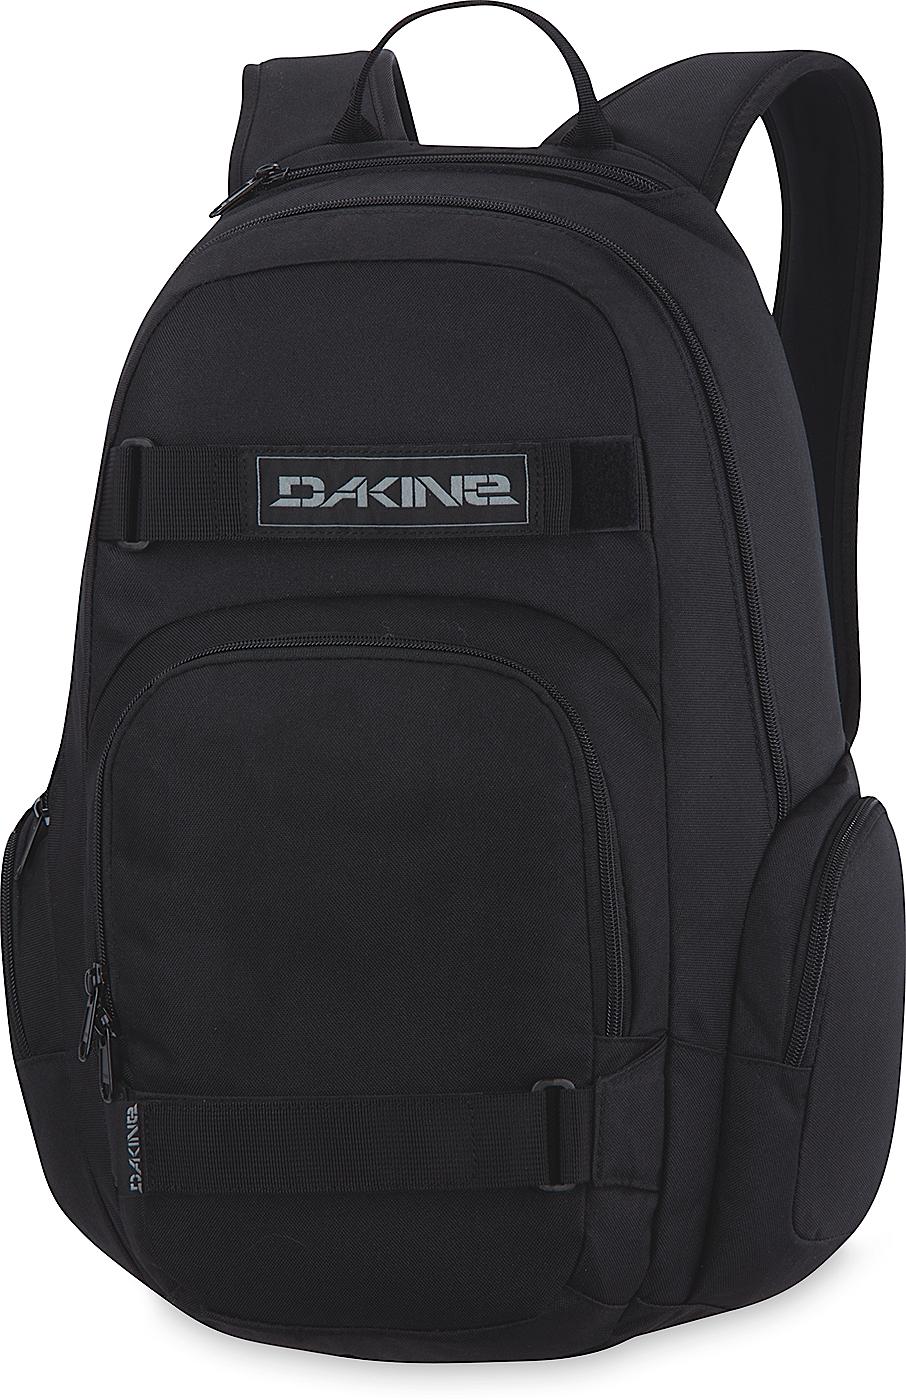 Atlas 25L Рюкзак Dakine Atlas 25L Black 2015S-08130004-Atlas25L-Black.jpg